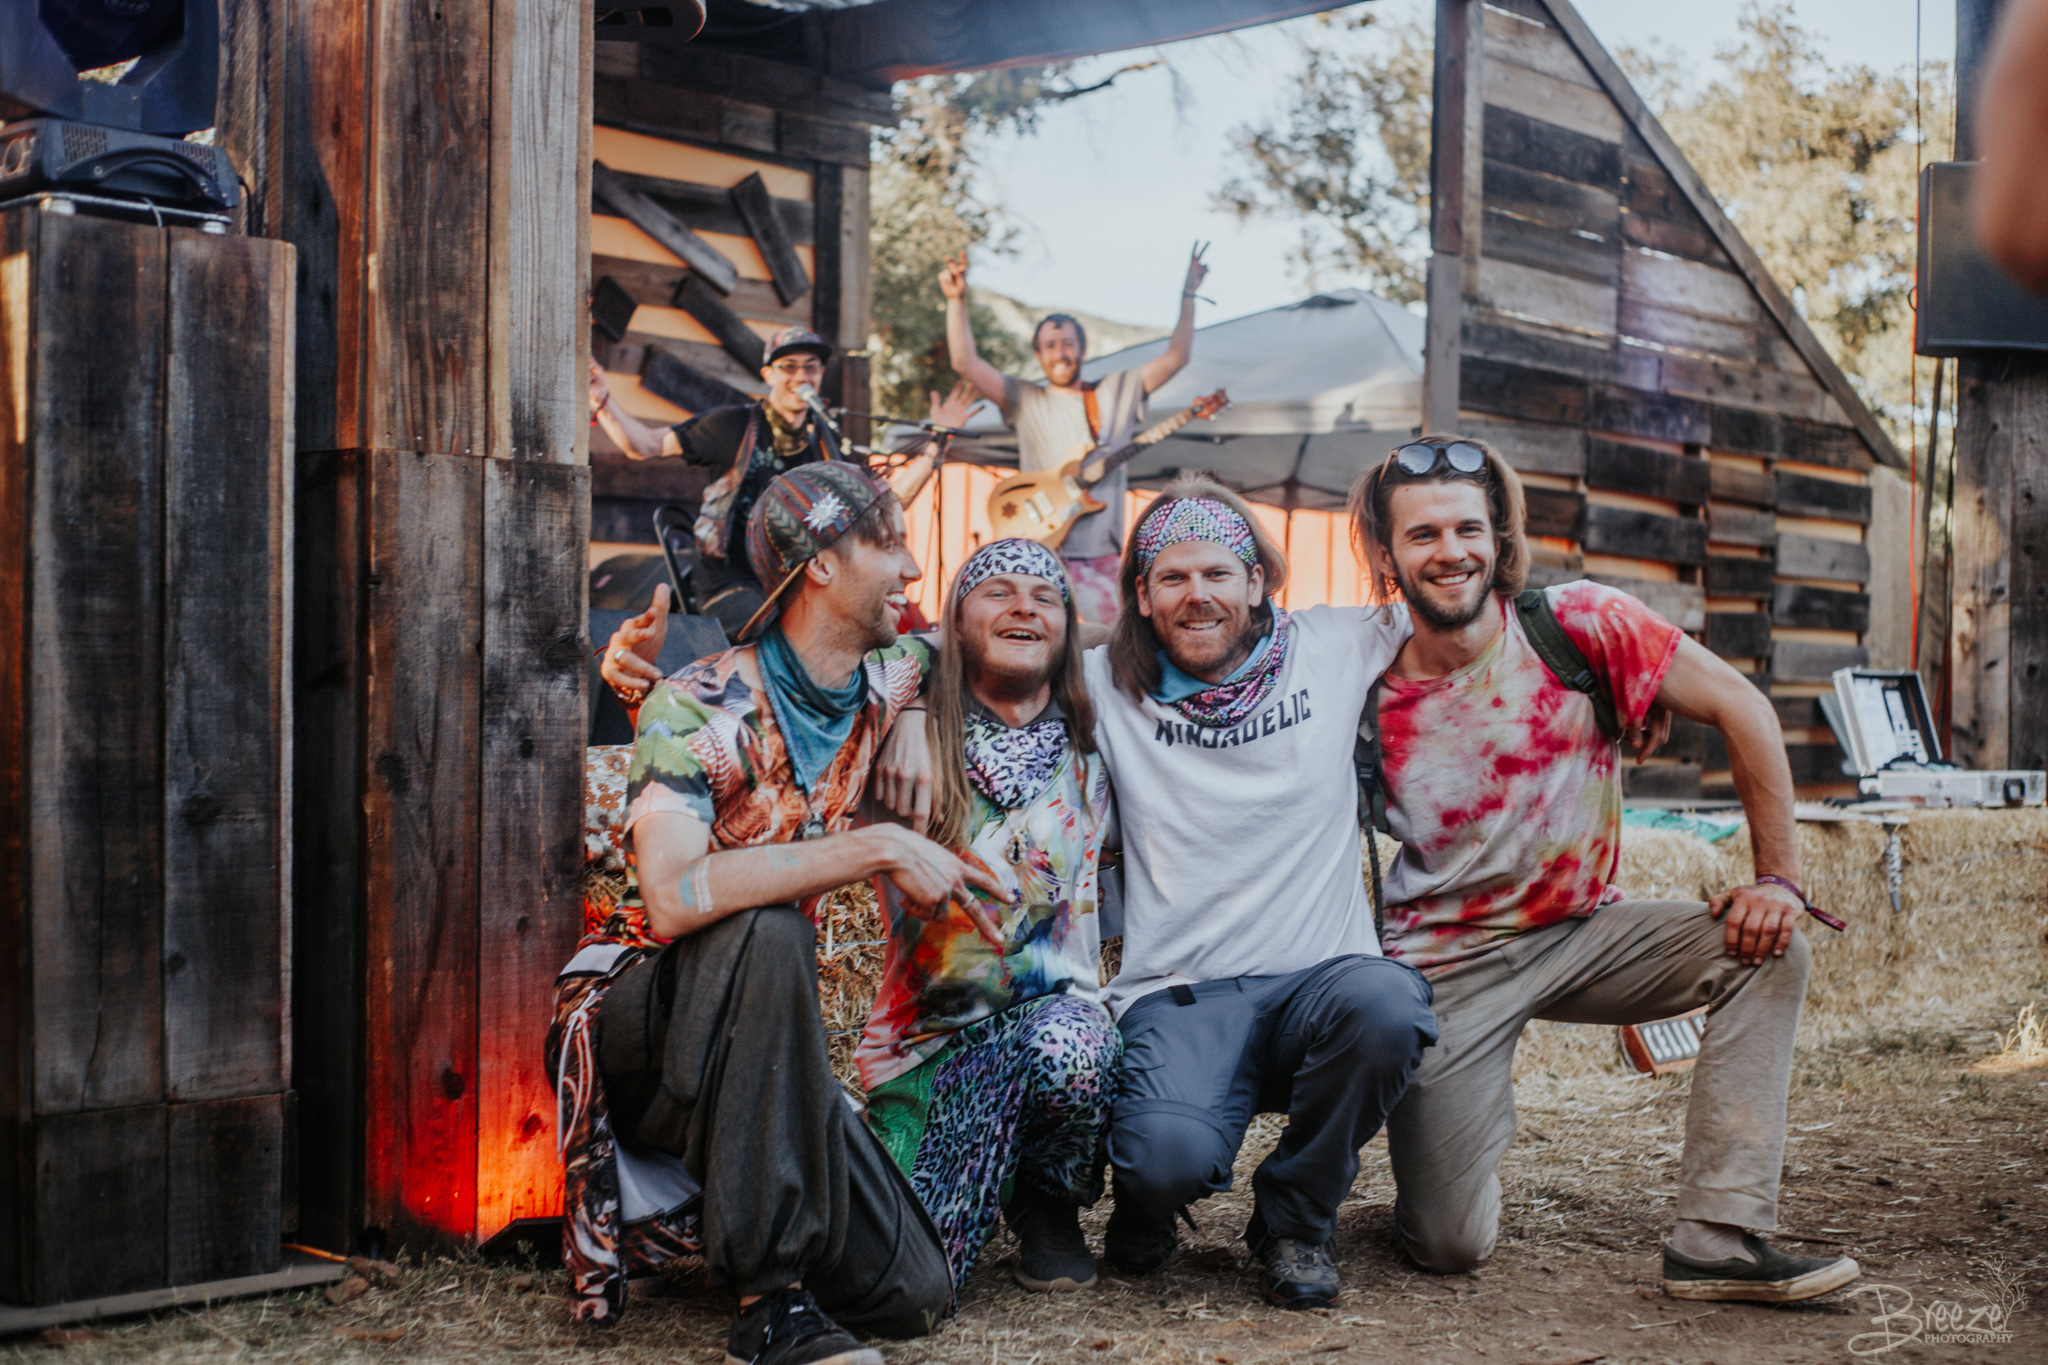 Lucidity.Festival.2019.Brie'Ana Breeze Photography and Media-7472.jpg